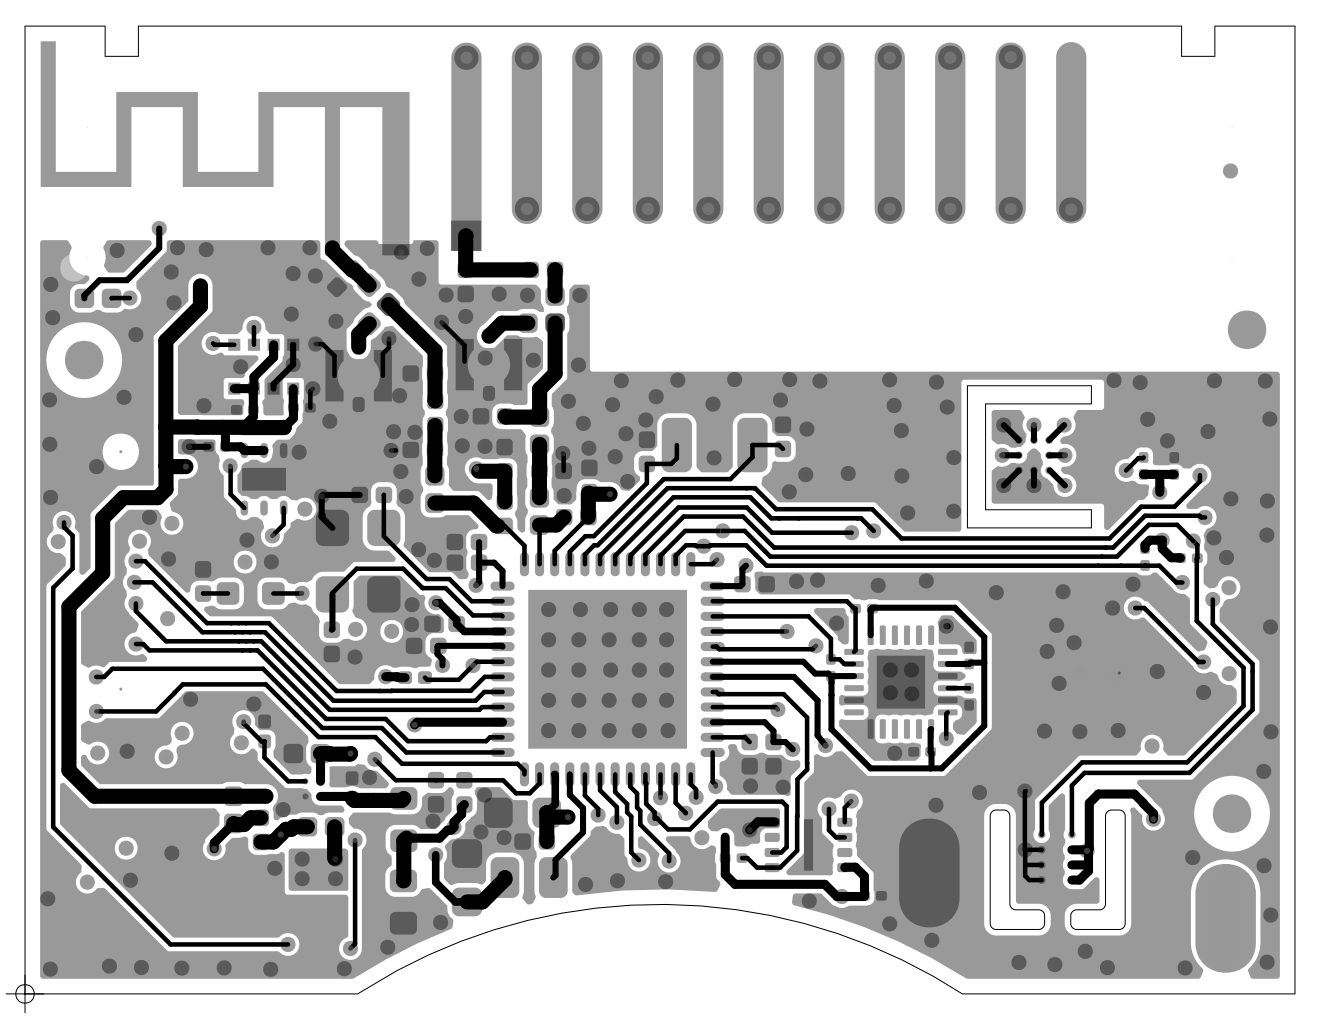 The Thingsquare Blog How To Design Compatible Hardware Combination Lock Using Msp430 Launchpad Circuit First Cc1350 Sensortag Has A Small Size 24 Ghz Pcb Antenna Together With Miniature Helical Cc2650